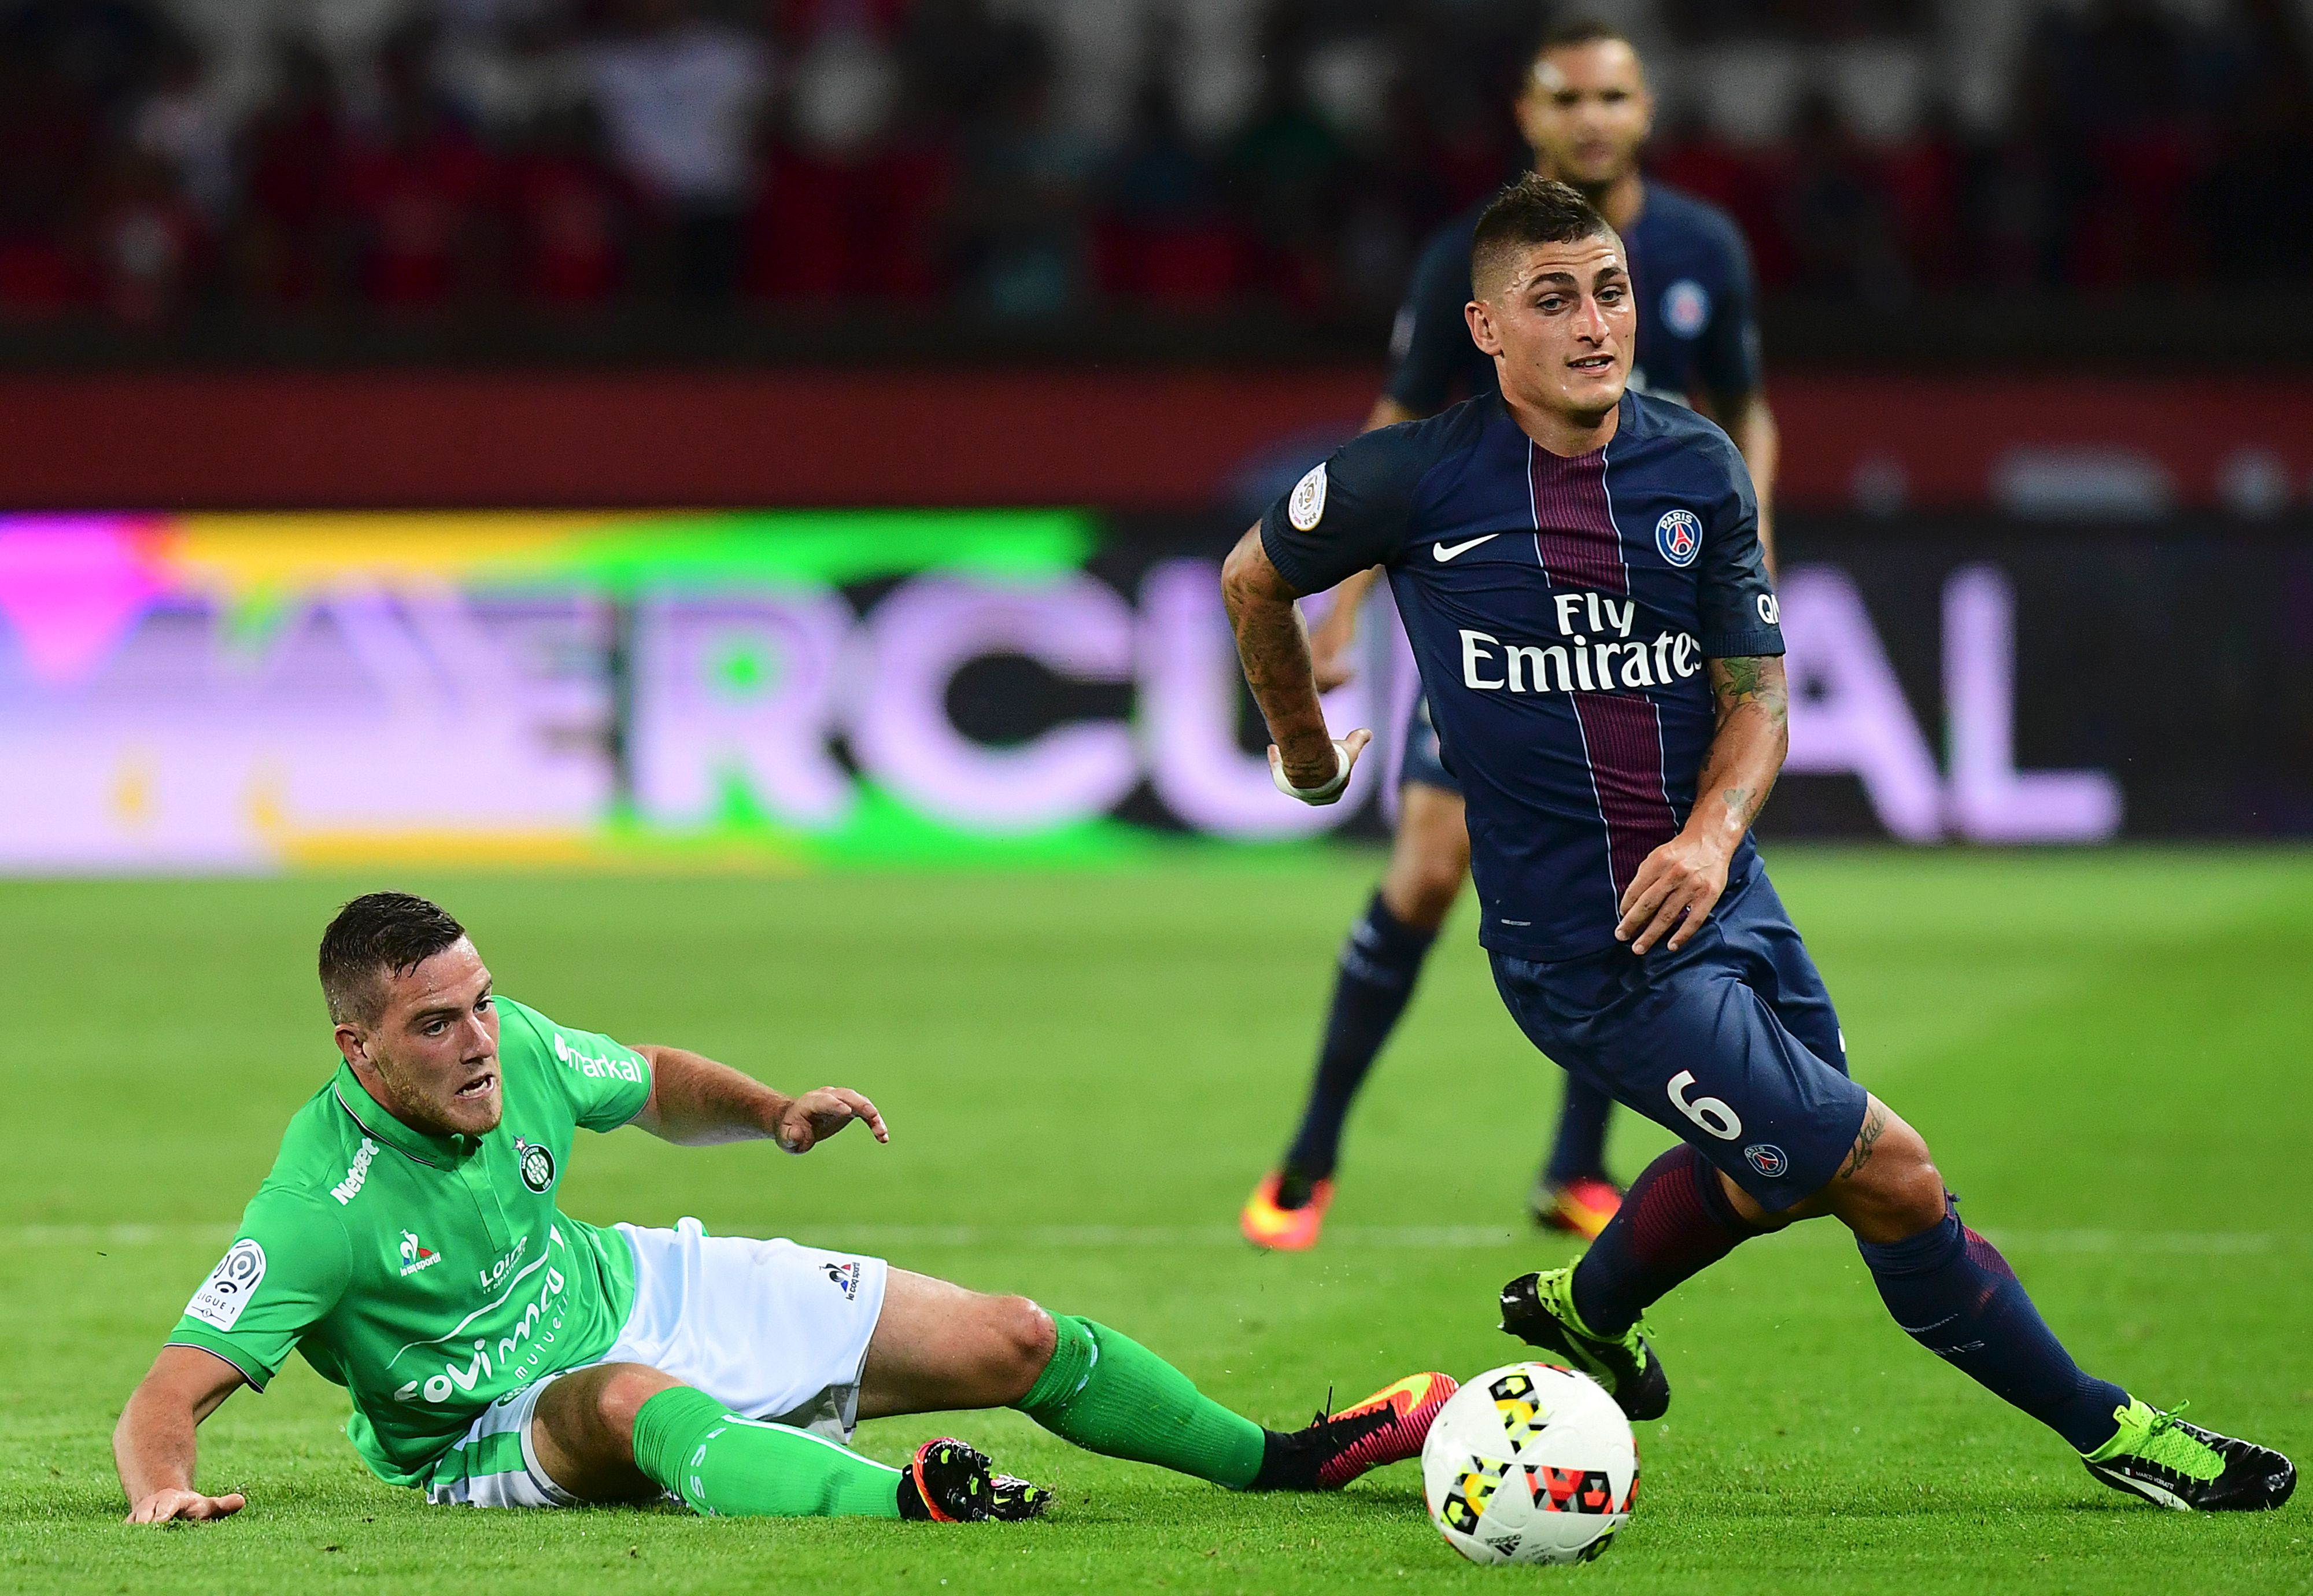 Paris Saint-Germain's Italian midfielder Marco Verratti (R) is tackled by Saint-Etienne's French midfielder Jordan Veretout during the French L1 football match between Paris Saint-Germain and Saint-Etienne at the Parc des Princes stadium in Paris on September 9, 2016. / AFP / FRANCK FIFE (Photo credit should read FRANCK FIFE/AFP/Getty Images)